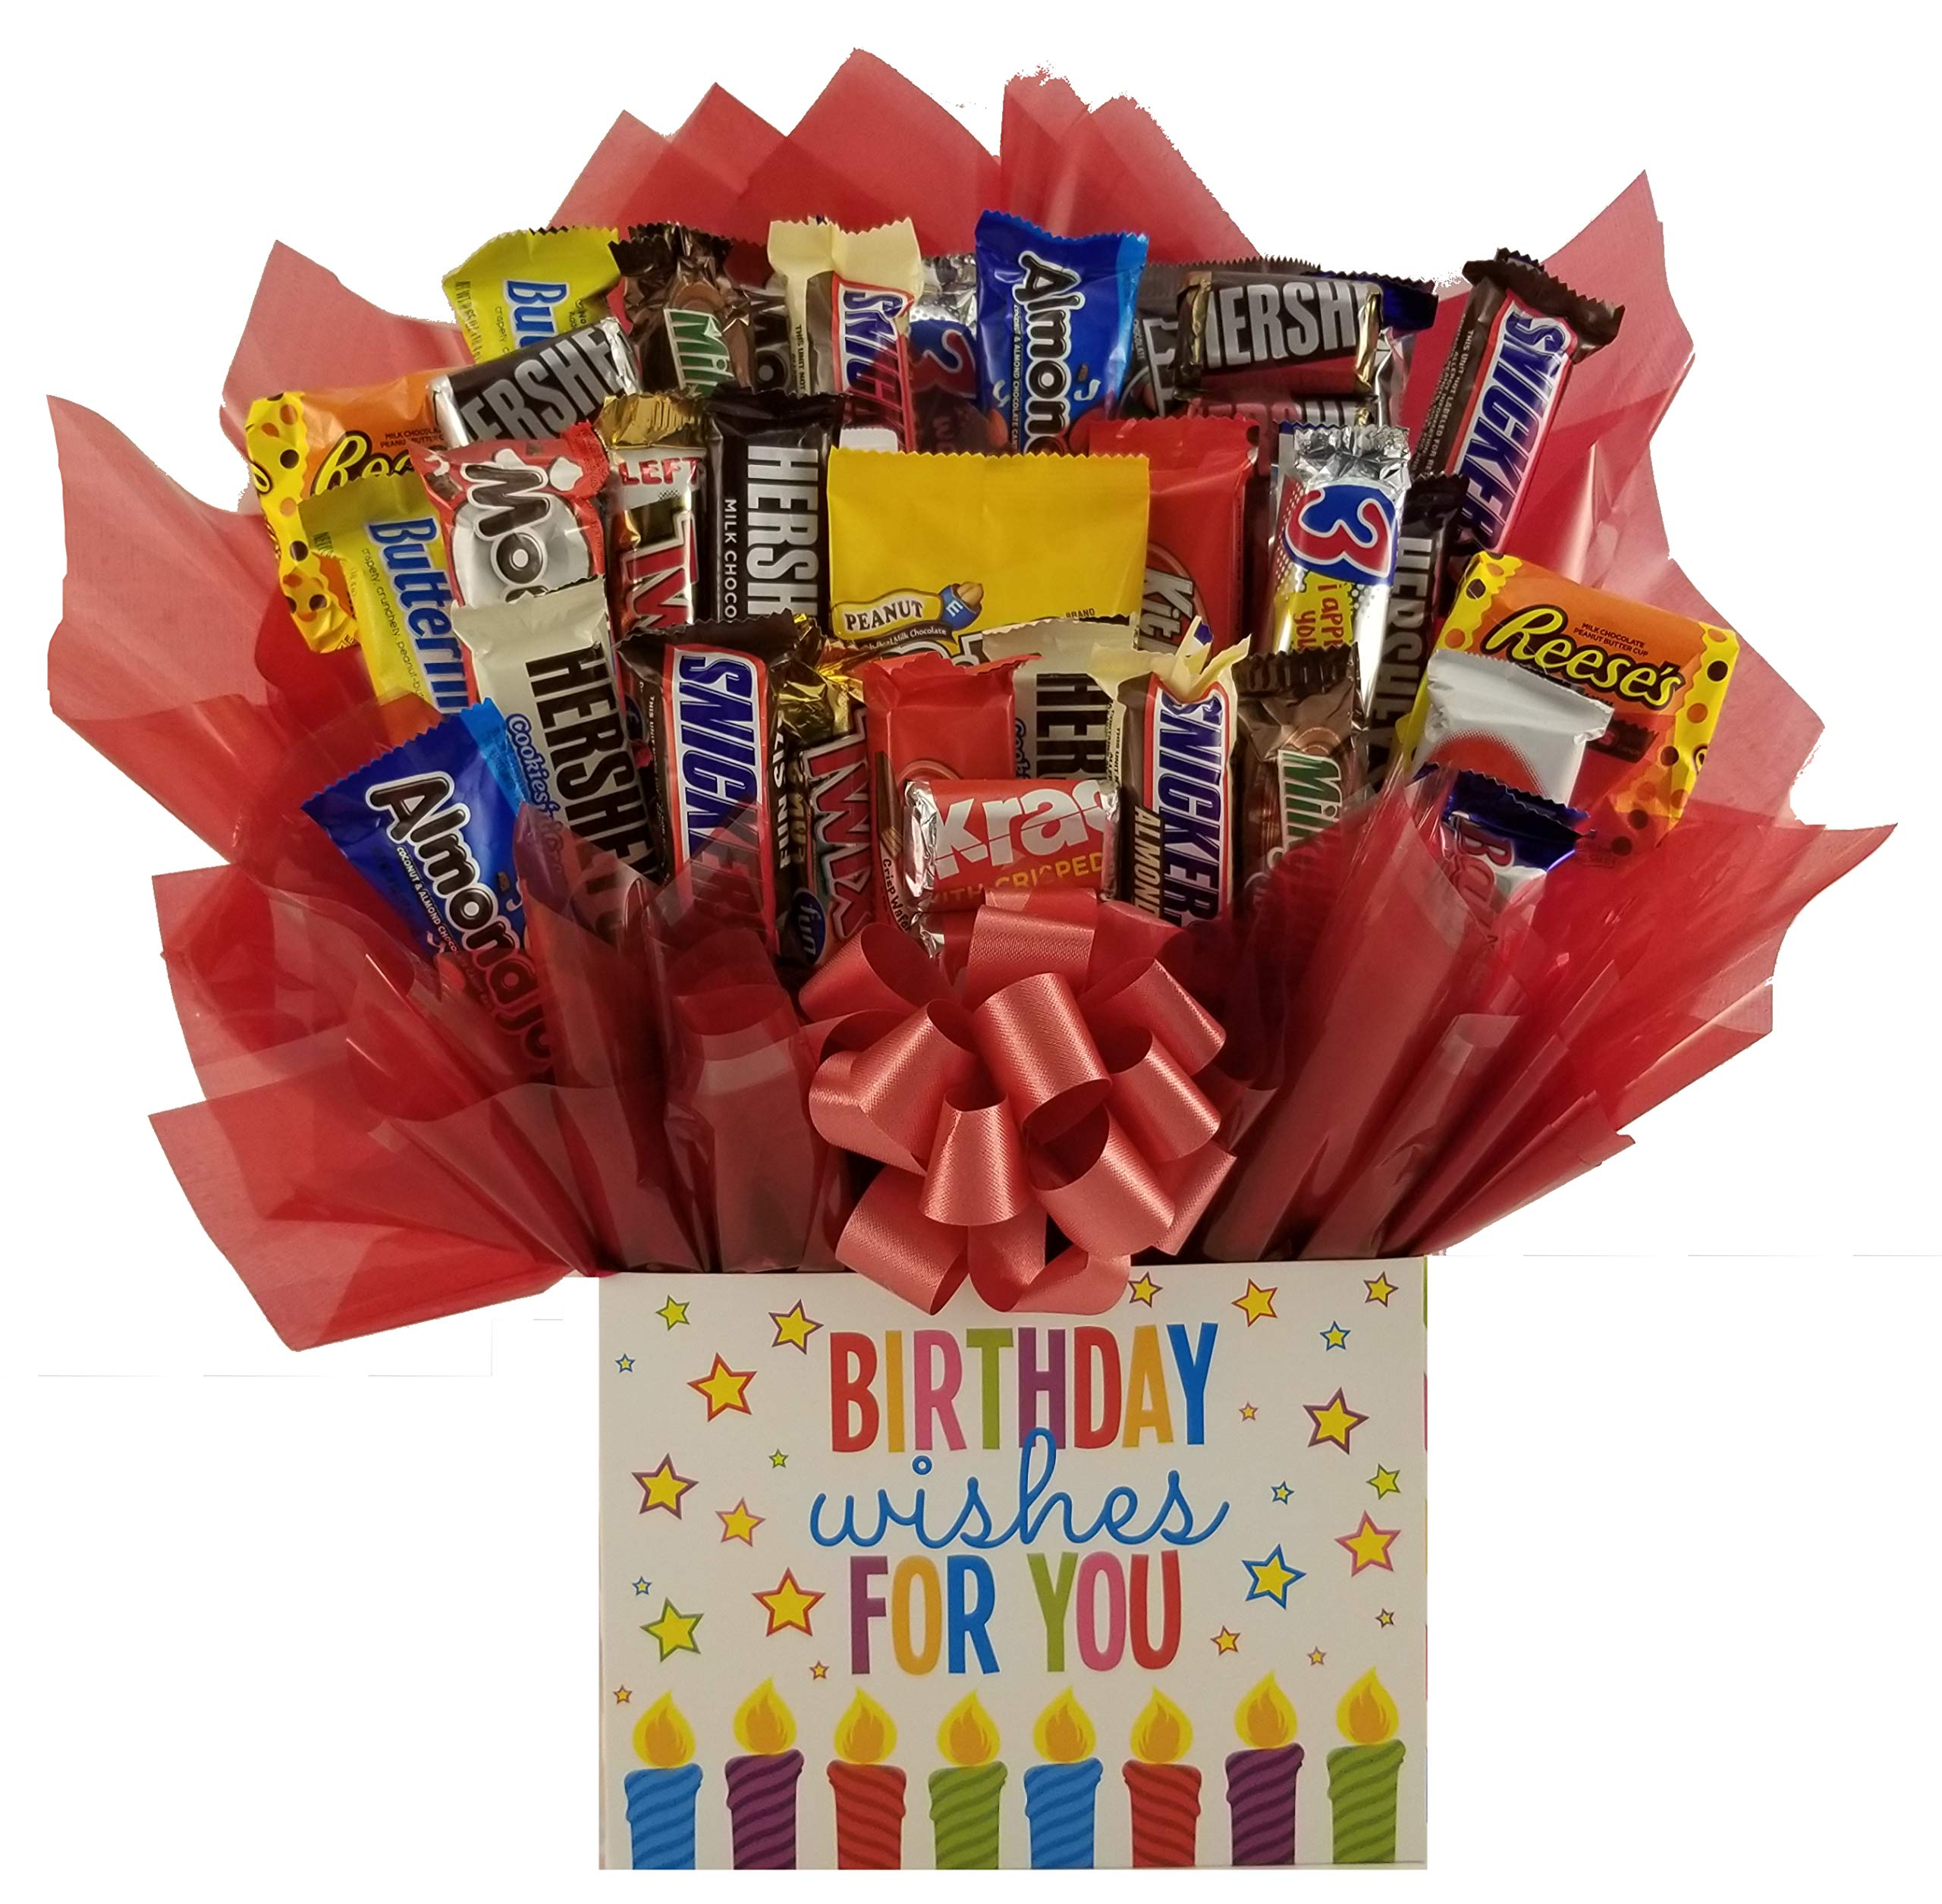 Chocolate Candy Bouquet gift box - Great as gift for a Happy Birthday gift or for any occasion (Birthday Wishes Gift Box) by So Sweet of You